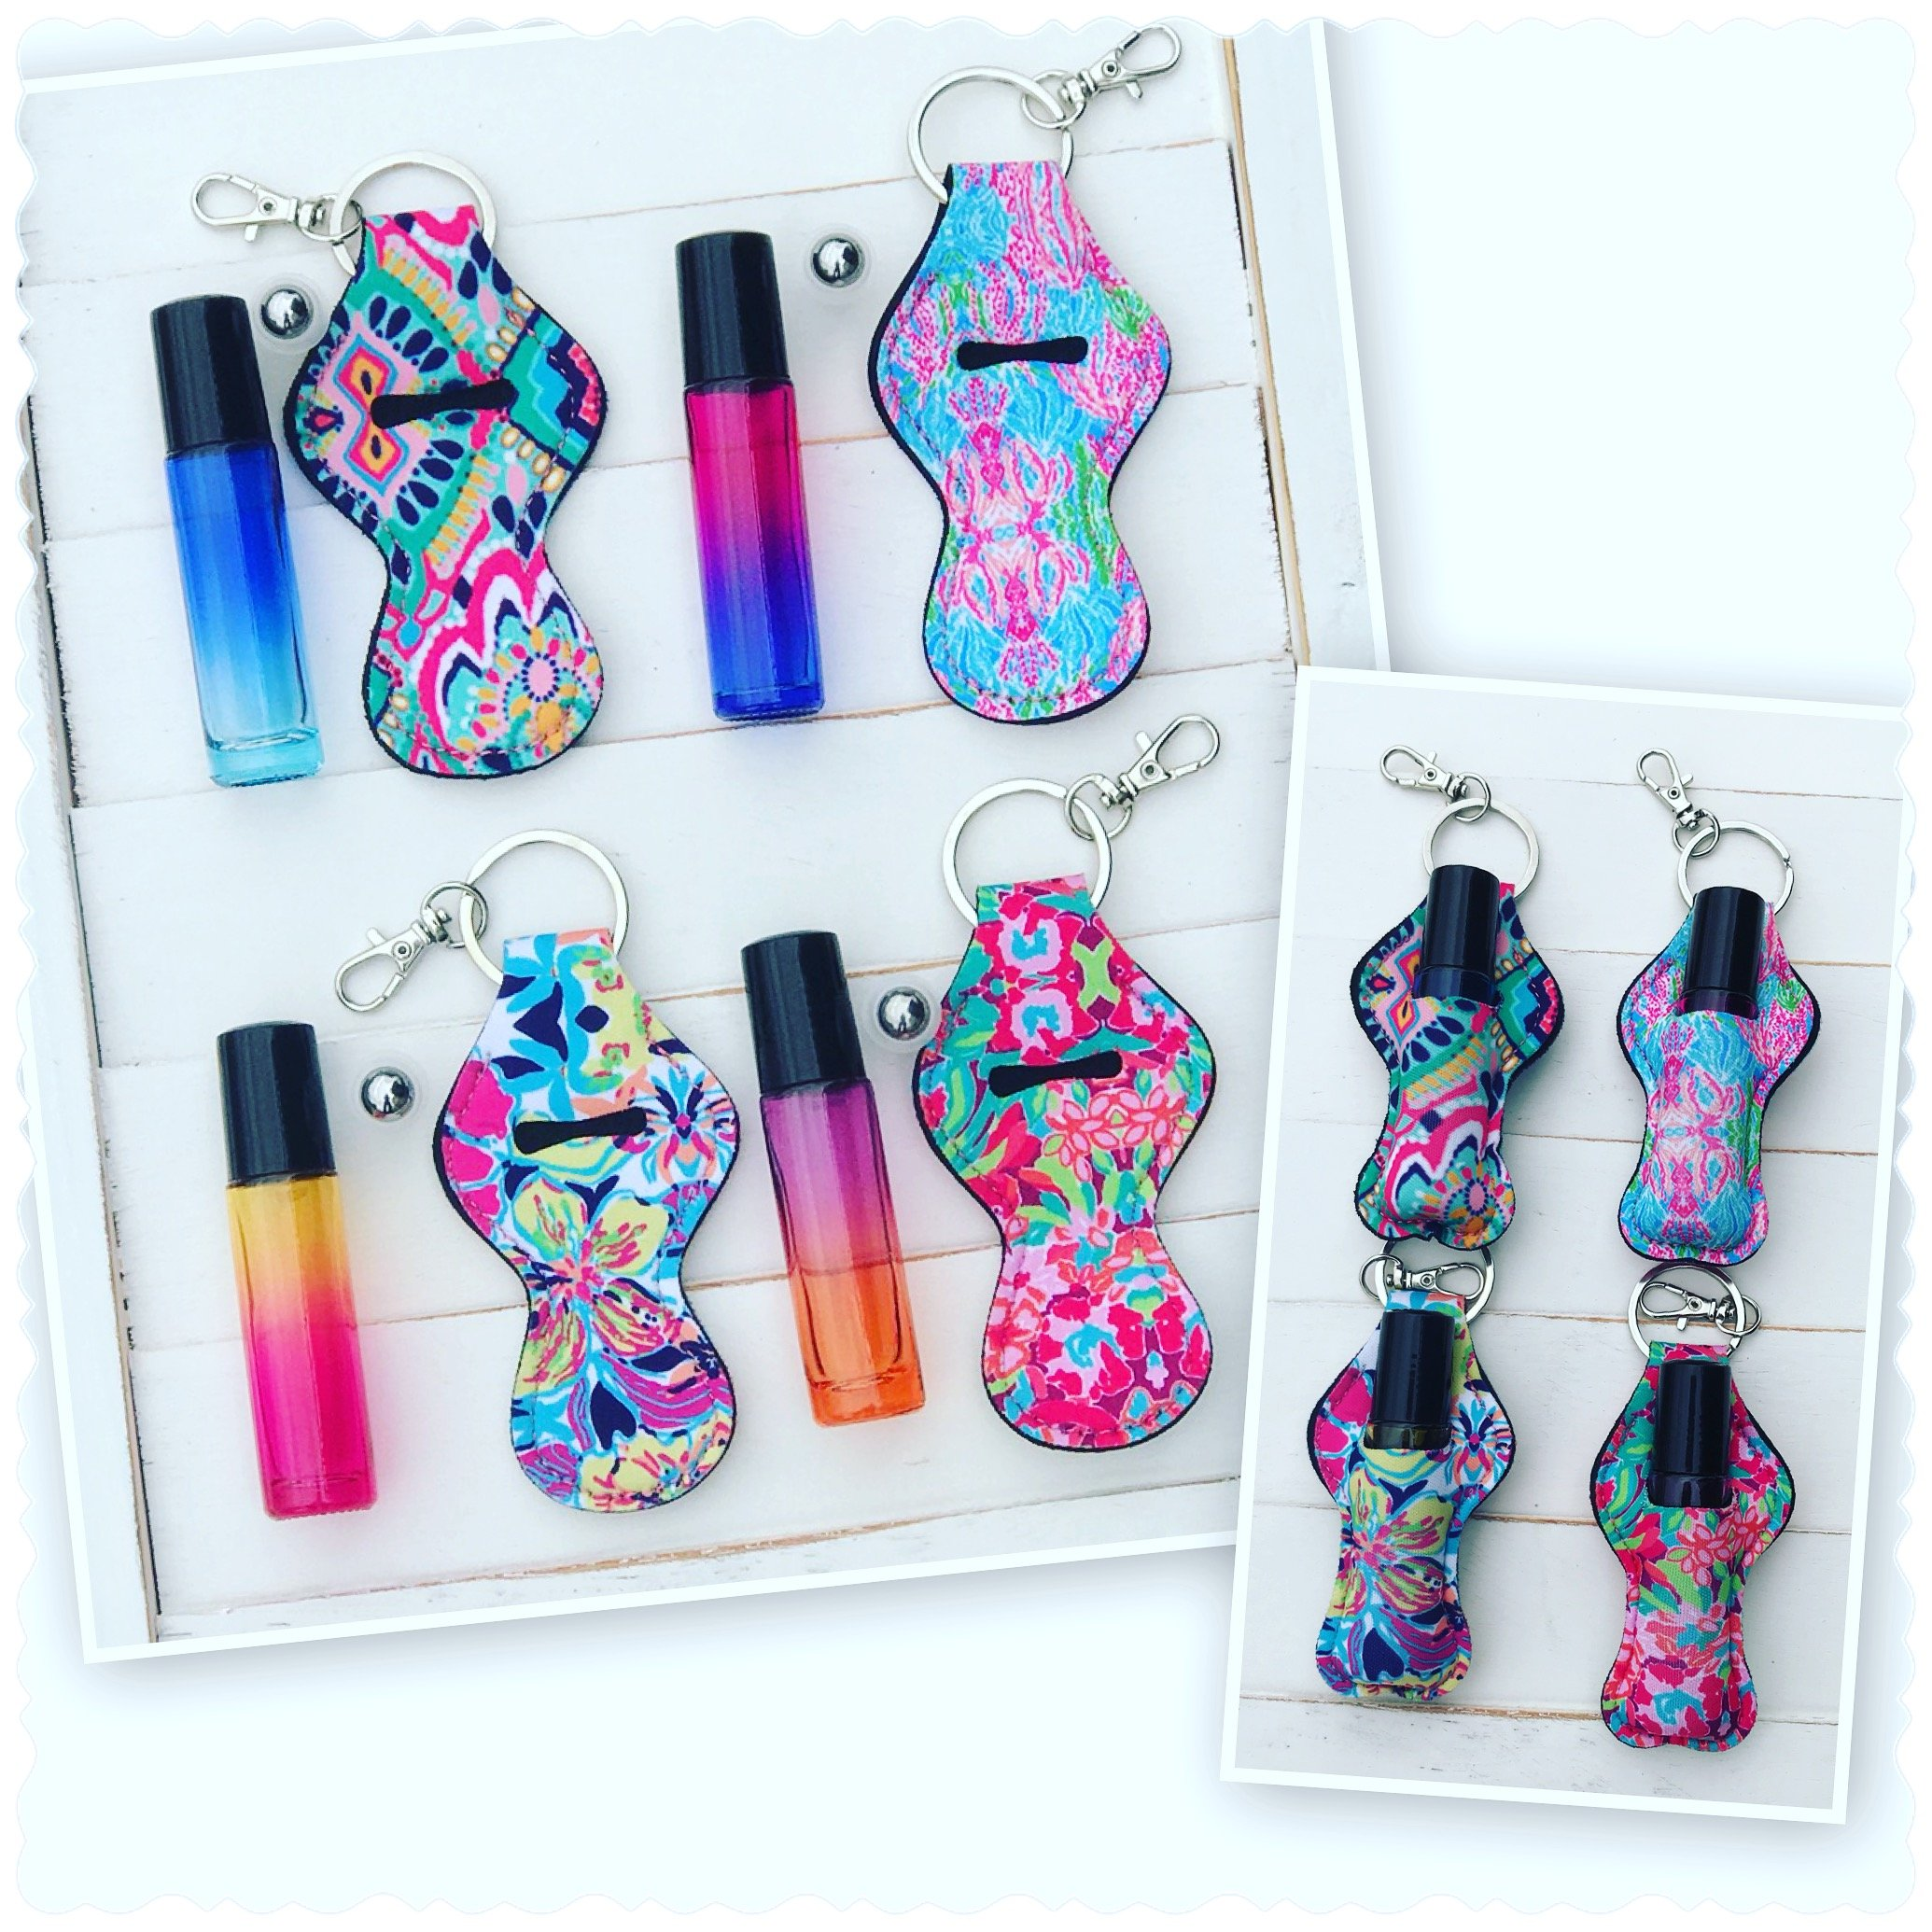 SET OF 4 OMBRE 10ML GLASS ROLLER BOTTLES STAINLESS STEEL ROLL-ON BALLS MATCHING LILLY PATTERN FLORAL NEOPRENE CARRYING KEYCHAIN CASES CLIP-ON KEY RING